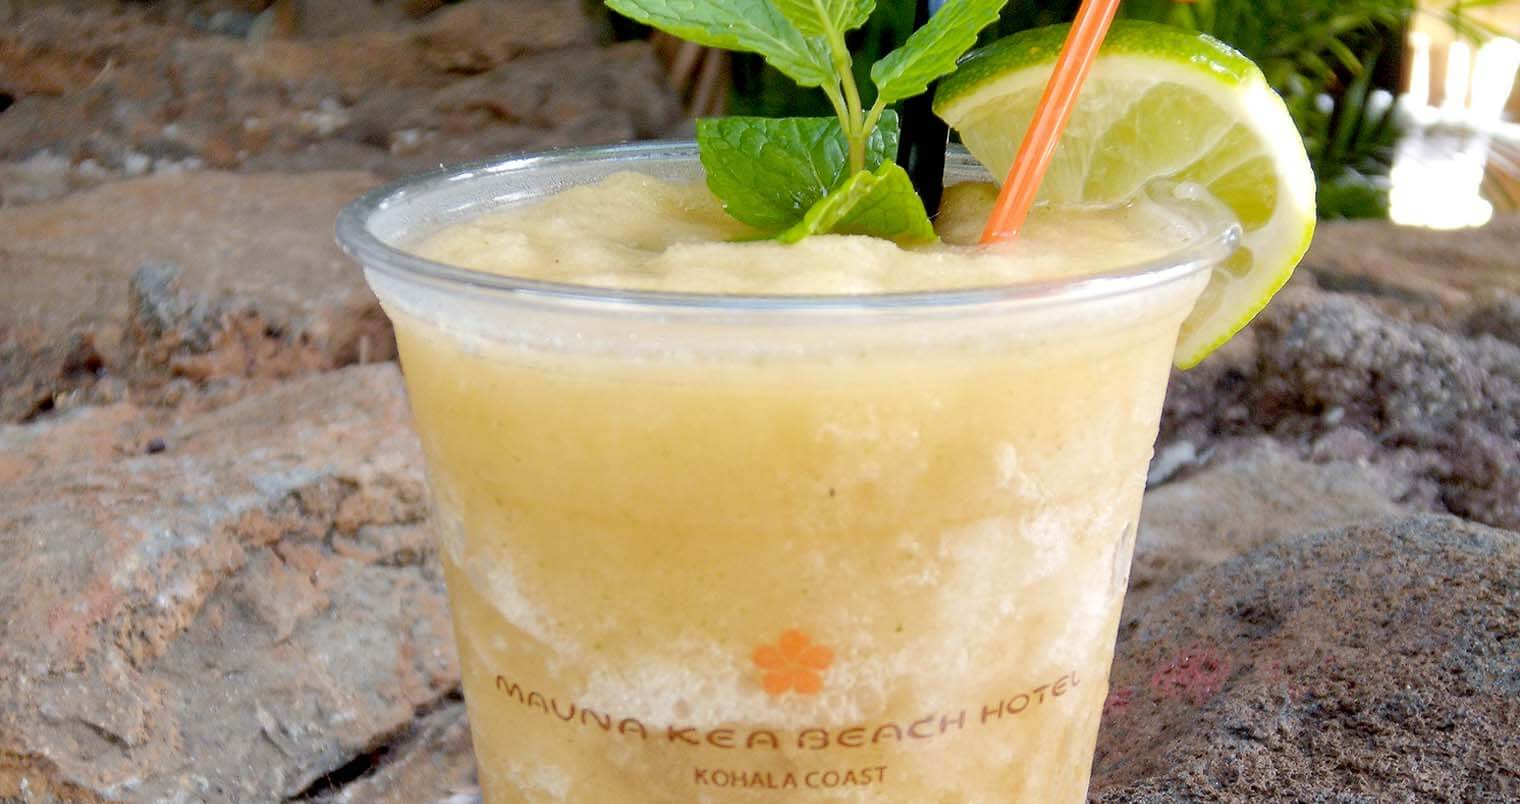 Must Mix: Fredrica at Mauna Kea Beach Hotel - The Perfect Summer Cocktail